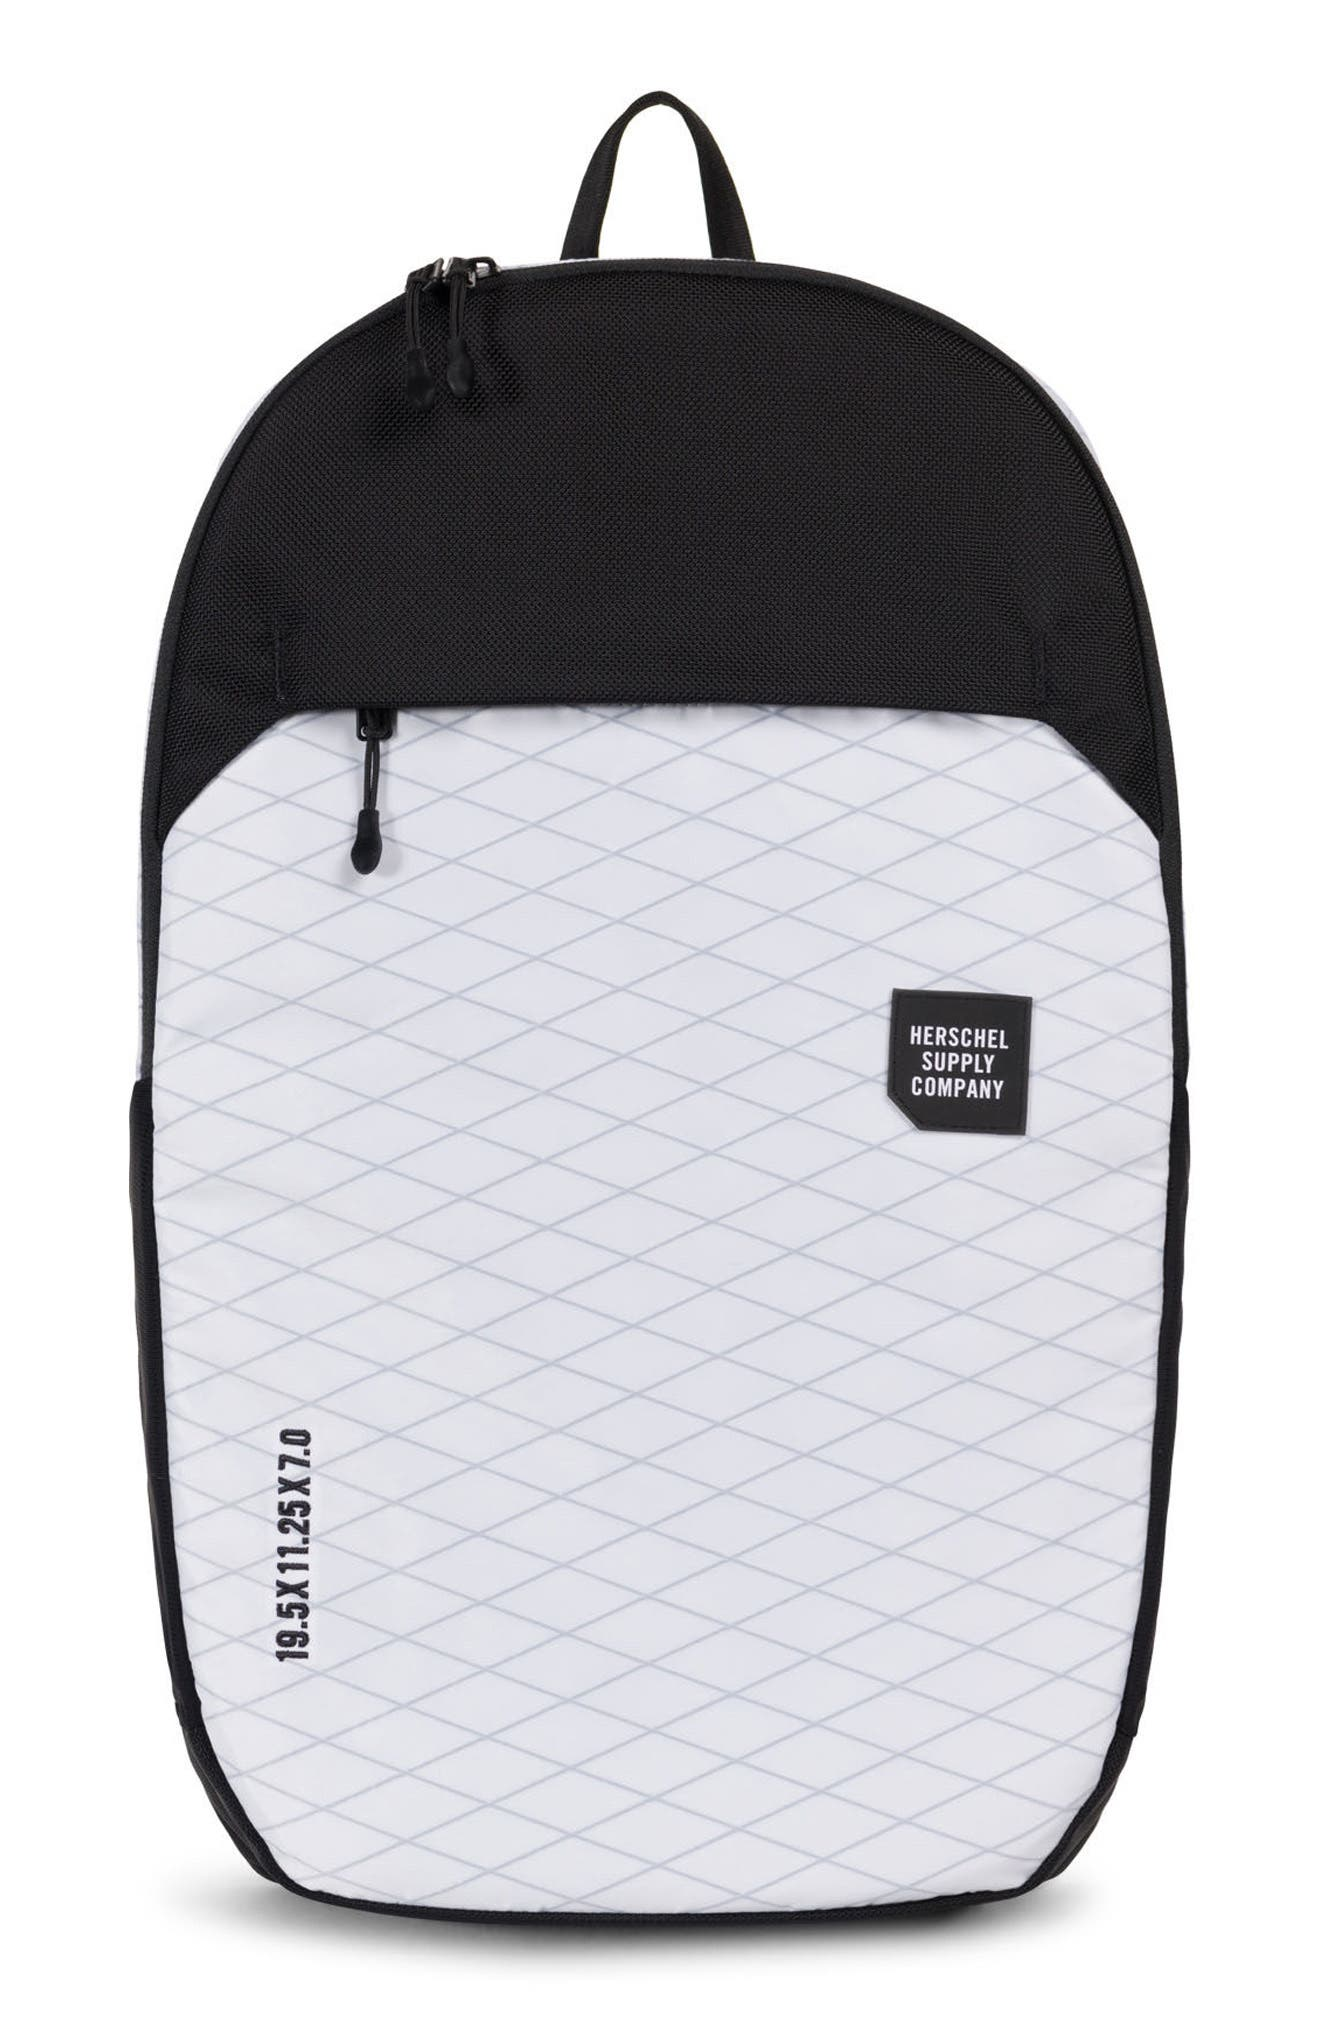 Trail Sailcloth Mammoth Large Backpack,                             Main thumbnail 1, color,                             White/ Black